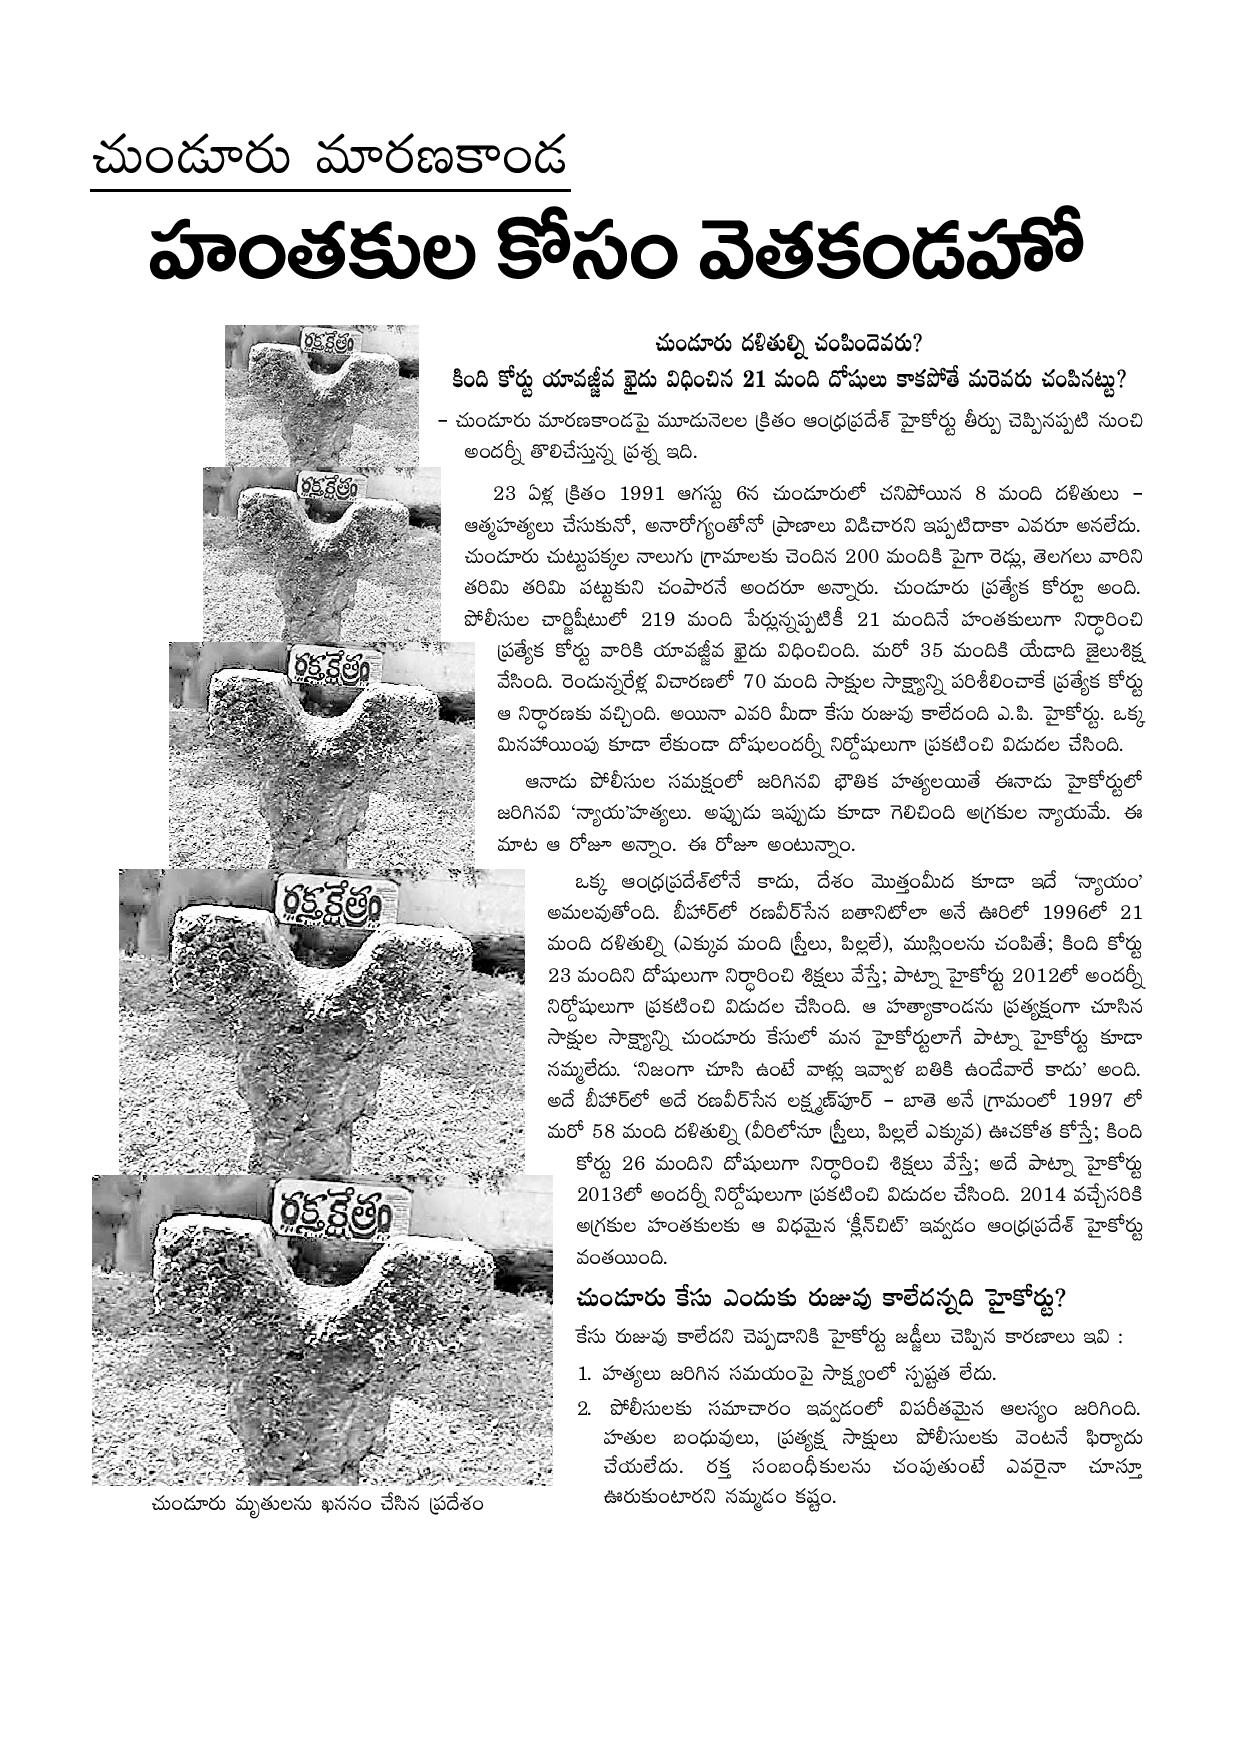 HRF,CITY UNIT Corrected karapatram 23.4.2014-page-001